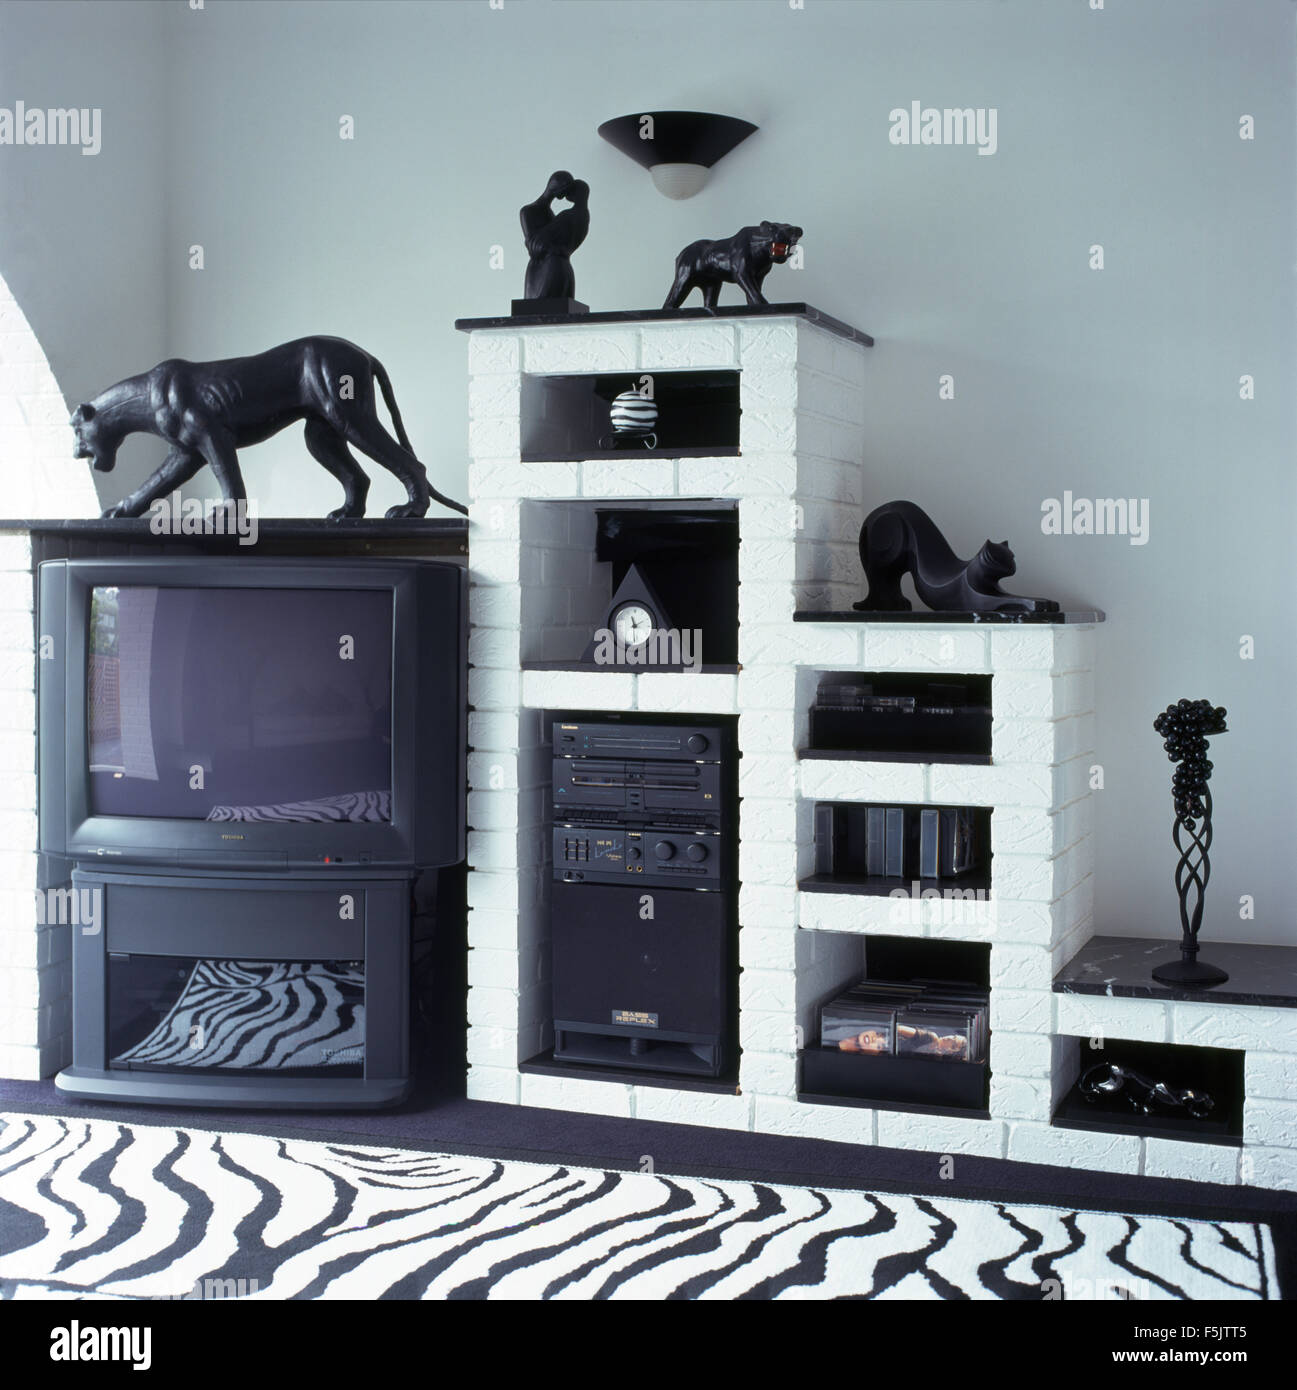 Music Living Room Television And Music System On White Painted Brick Shelving In A